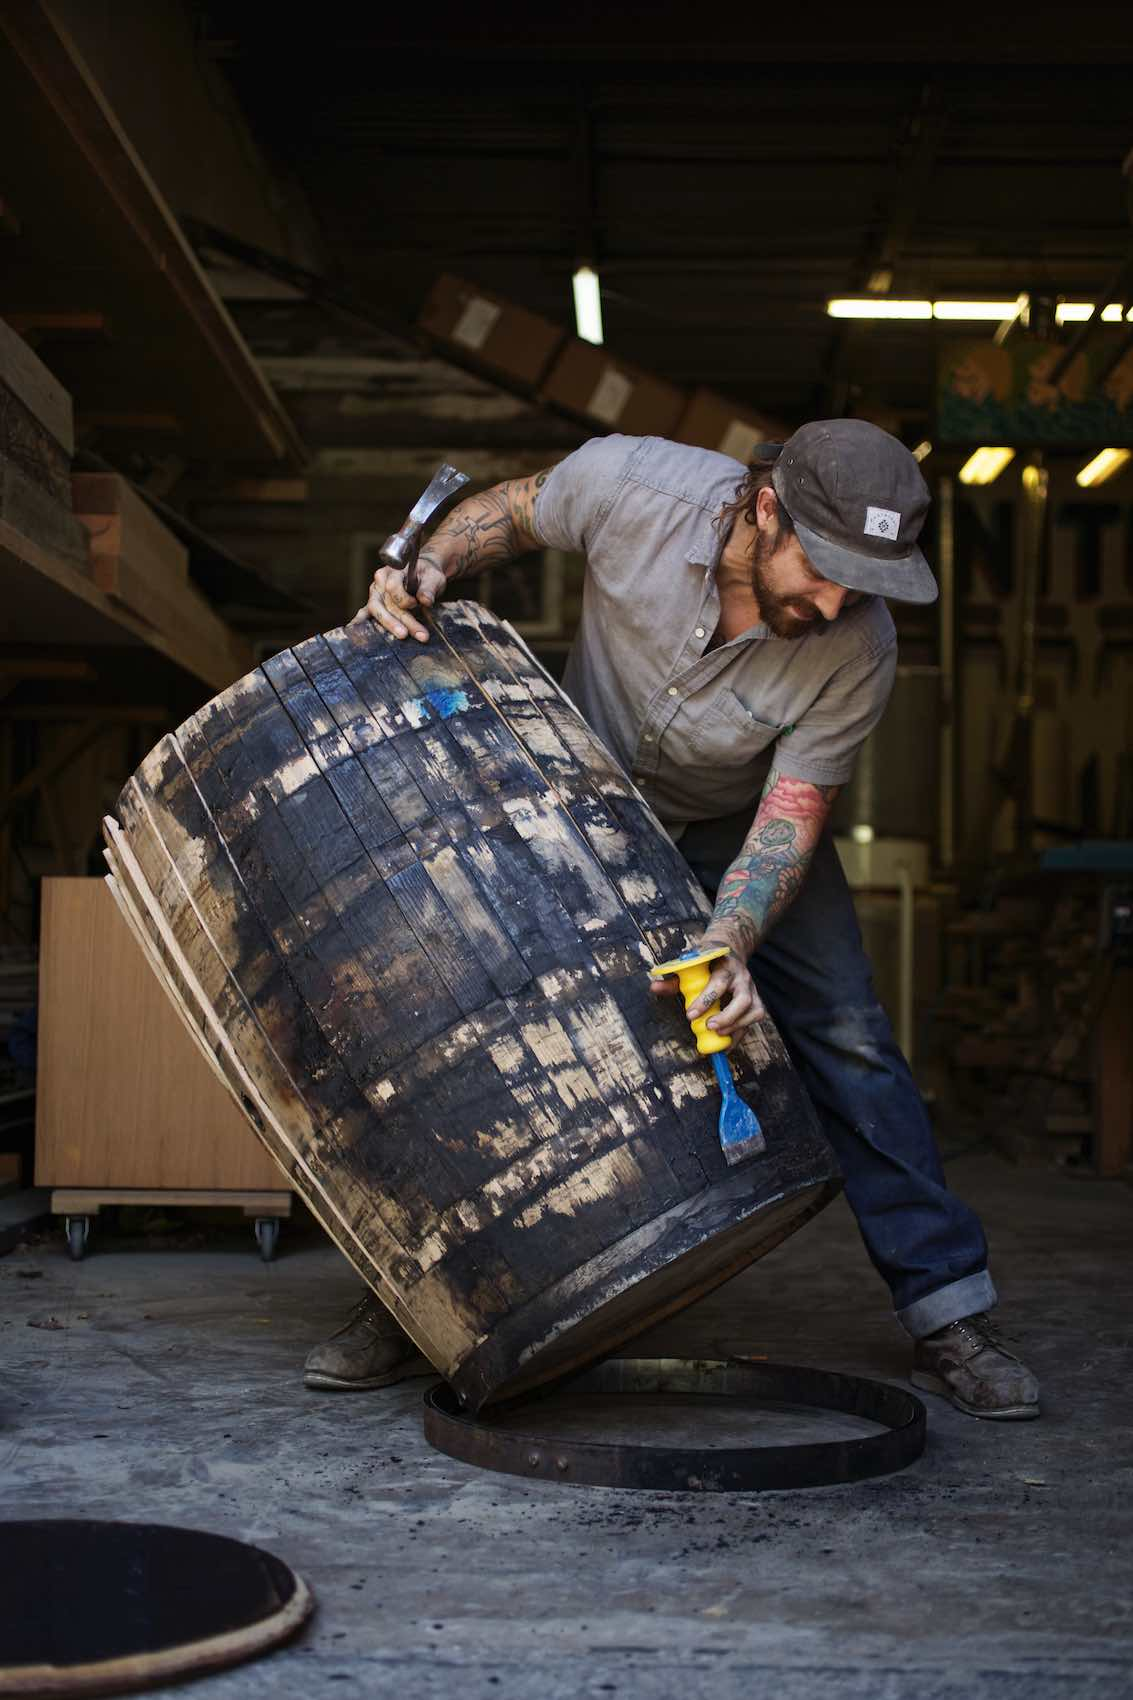 Jody Horton Photography - Man breaking down wood barrel.